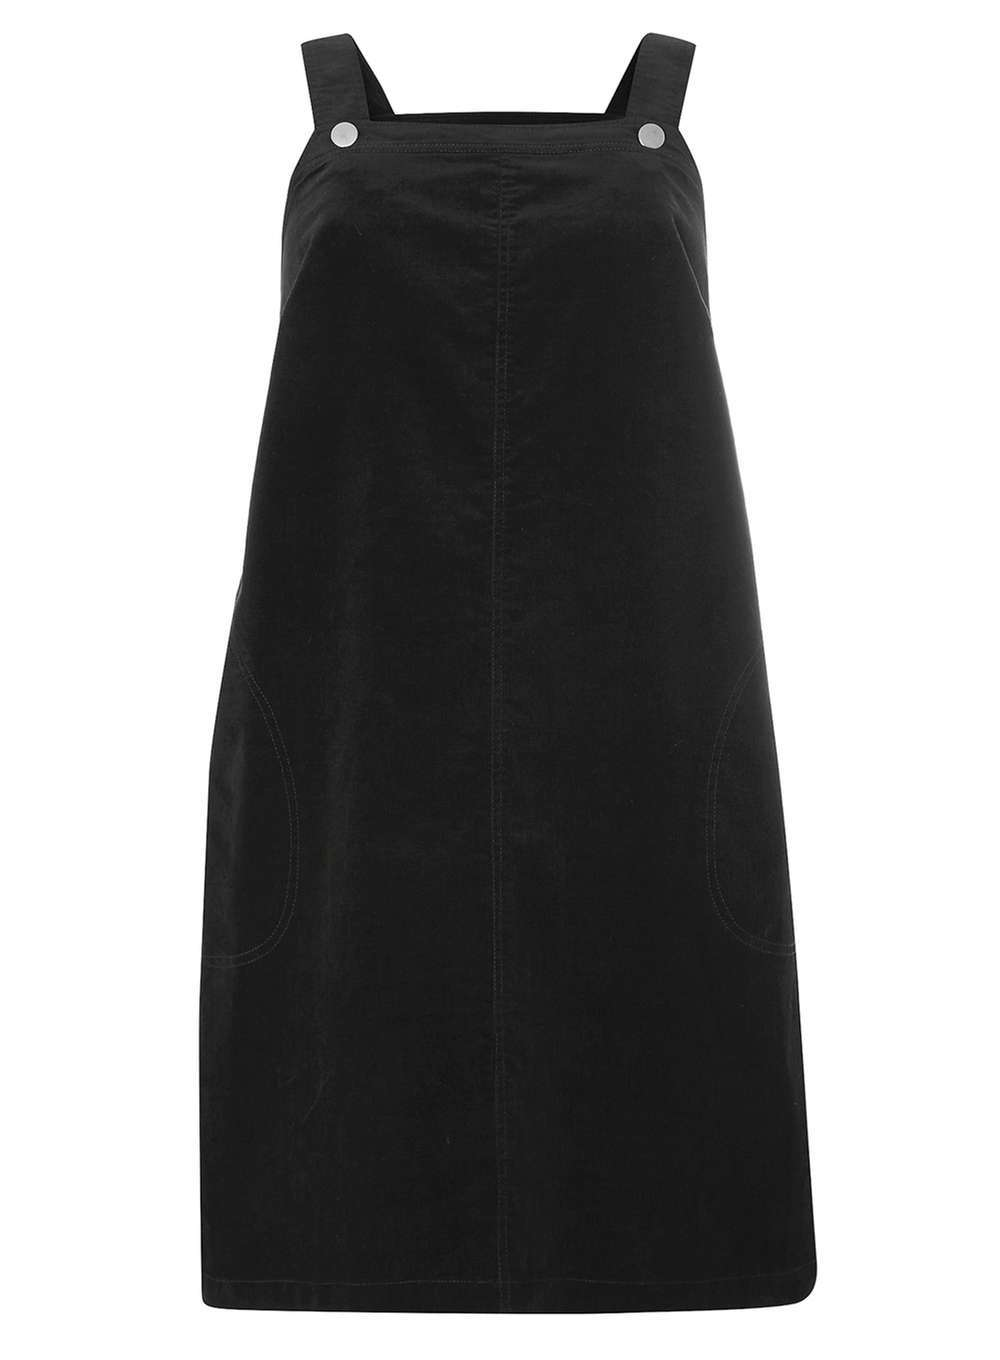 Womens Dp Curve Plus Size Black Cord Pinny Dress Black - length: mid thigh; sleeve style: standard vest straps/shoulder straps; pattern: plain; style: dungaree dress/pinafore; predominant colour: black; occasions: casual; fit: body skimming; fibres: cotton - stretch; sleeve length: sleeveless; texture group: corduroy; neckline: medium square neck; pattern type: fabric; season: a/w 2016; wardrobe: highlight